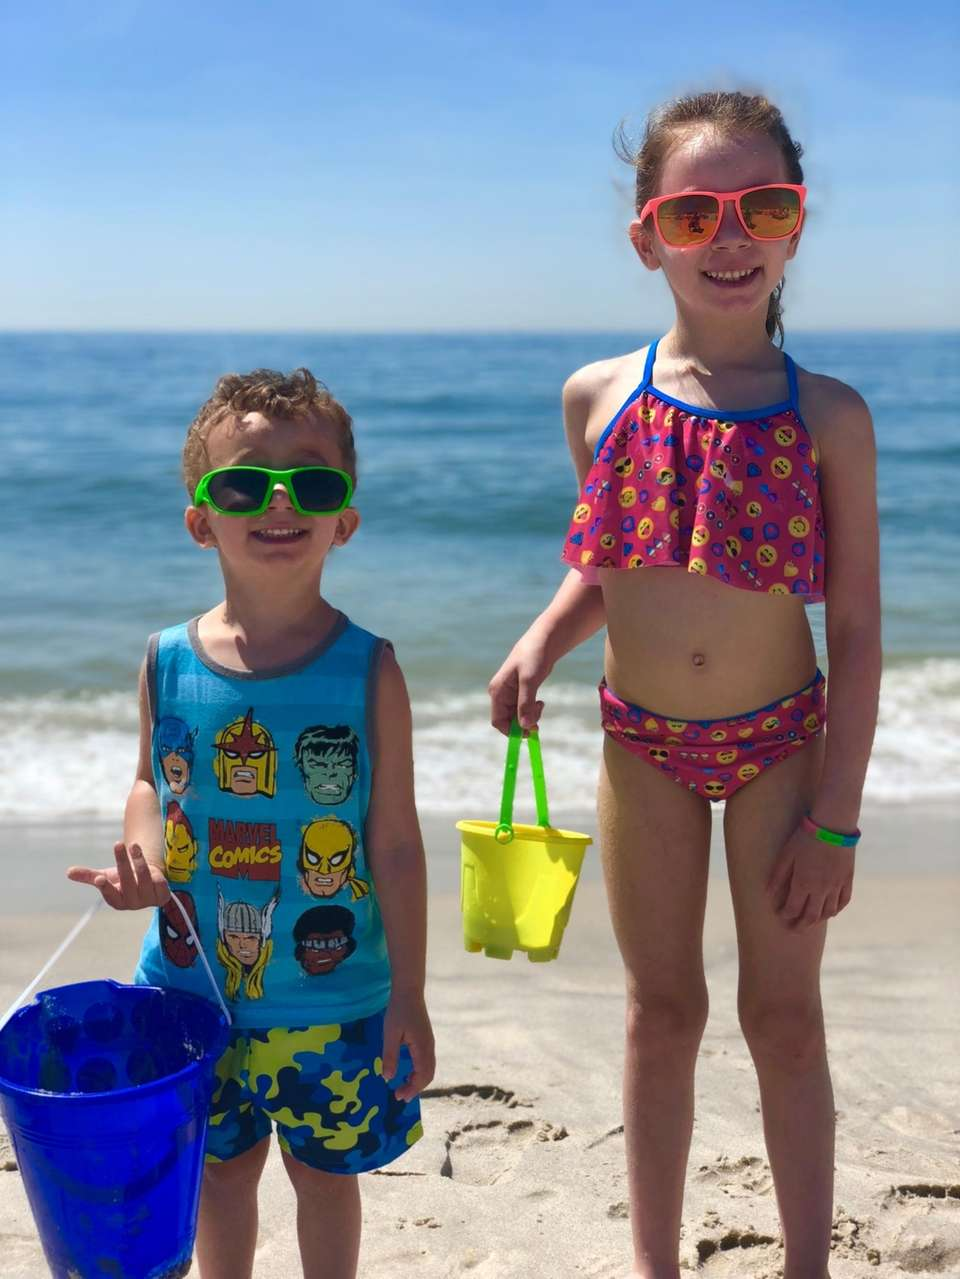 Hannah and Jacob Cohen, Tobay Beach, June 2018